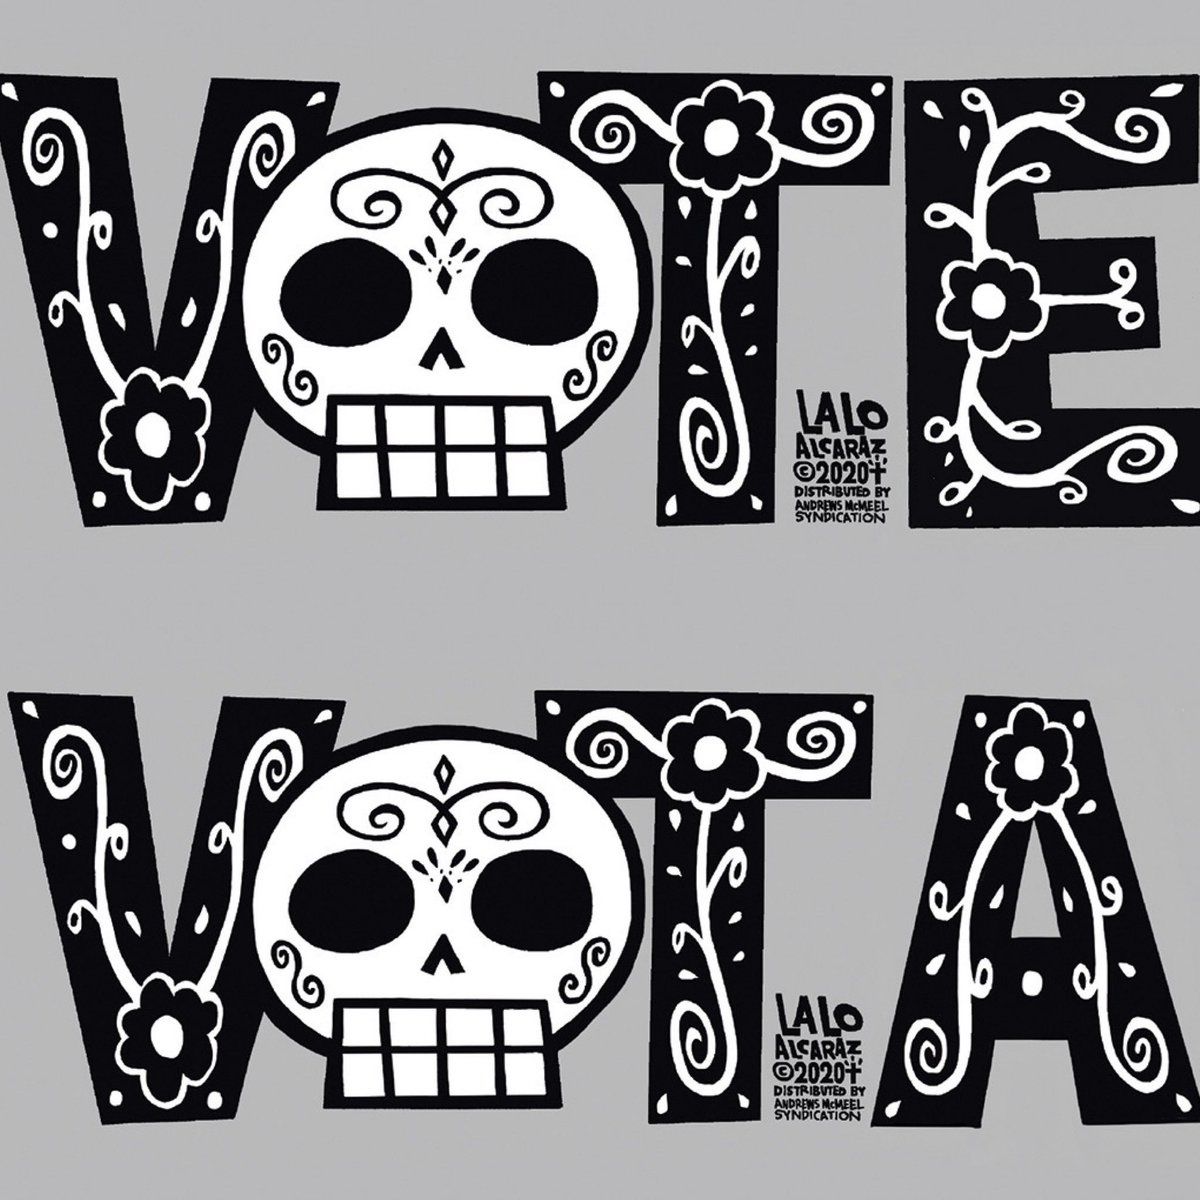 """The right to vote is precious, almost sacred. It is the most powerful nonviolent tool or instrument in a democratic society. We must use it."" - John Lewis. Art by @laloalcaraz. https://t.co/1HaQMdrsrk"